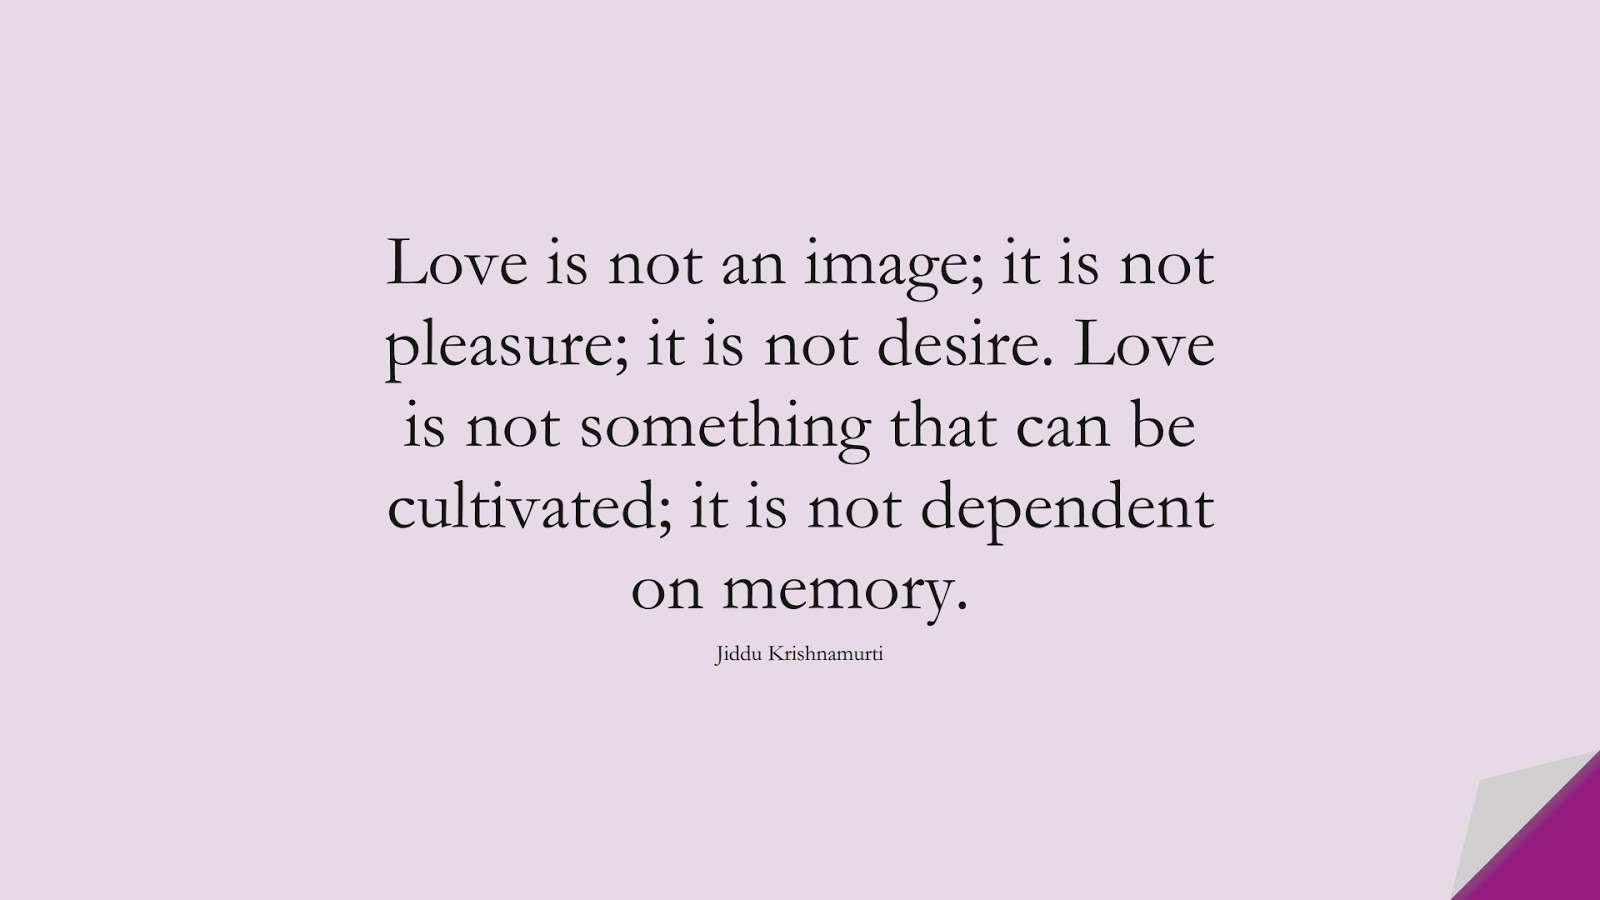 Love is not an image; it is not pleasure; it is not desire. Love is not something that can be cultivated; it is not dependent on memory. (Jiddu Krishnamurti);  #LoveQuotes